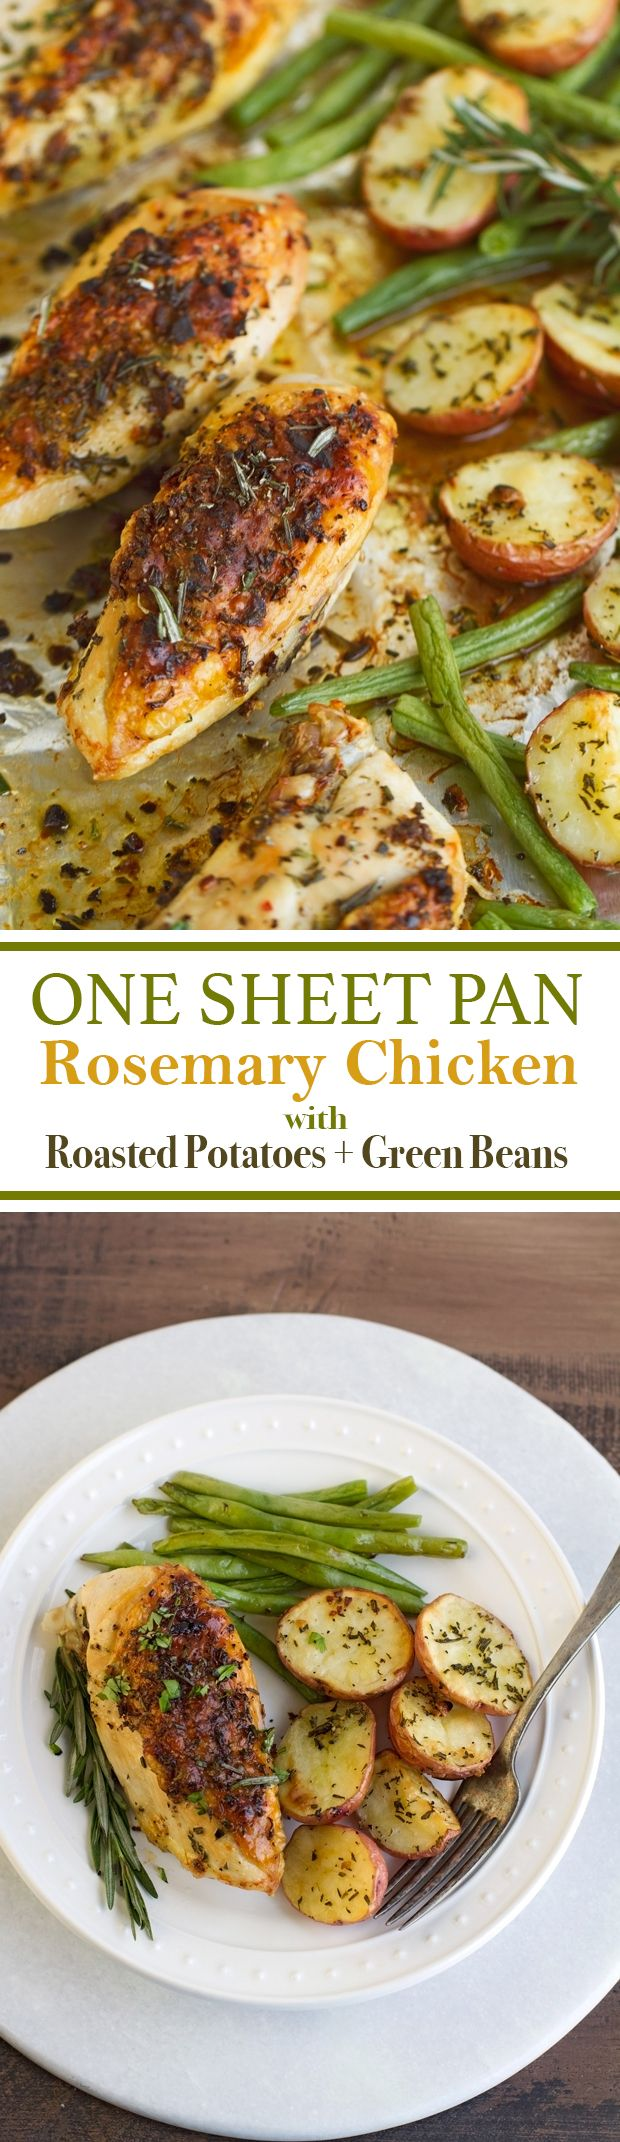 One Sheet Pan Rosemary Chicken and Potatoes & Green Beans - ALL cooked on one sheet pan